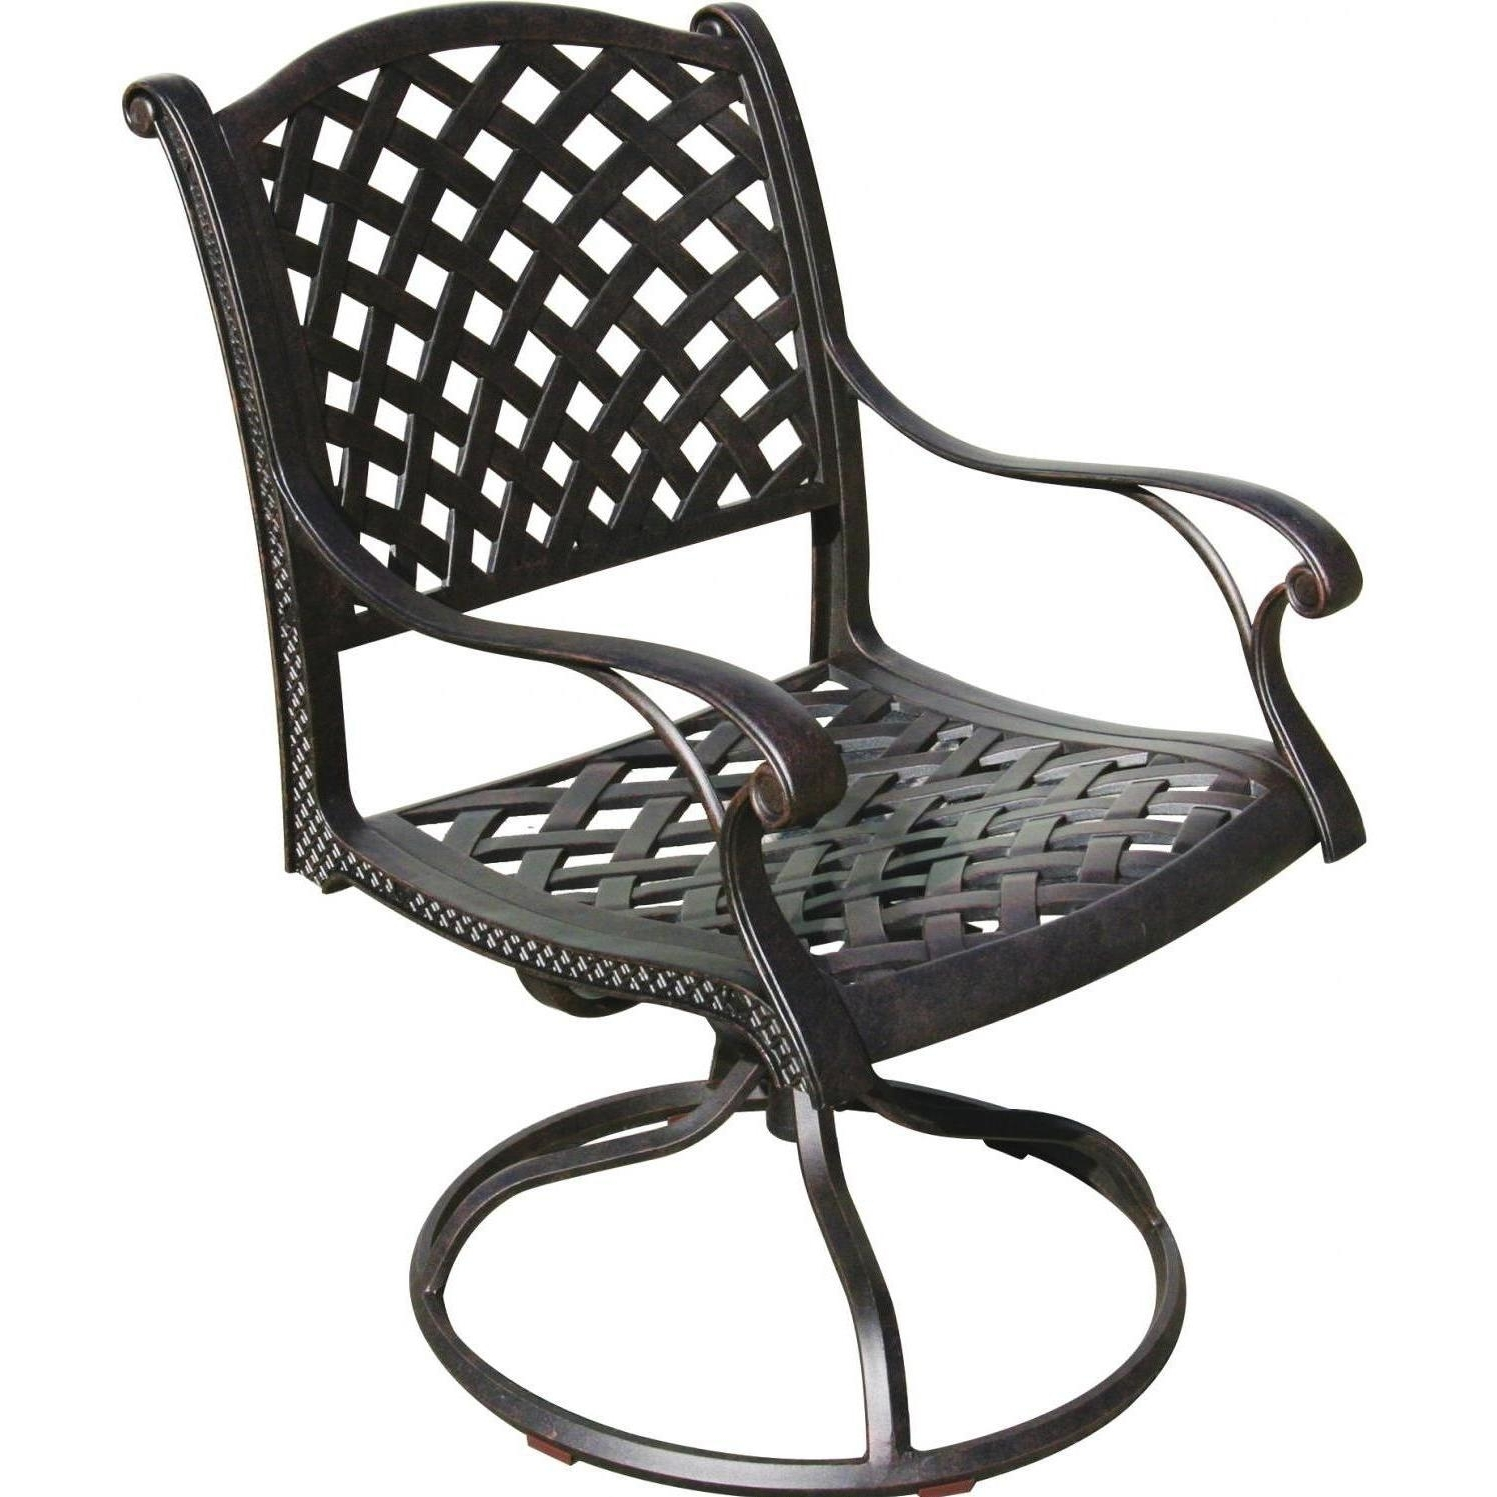 Aluminum Patio Rocking Chairs Throughout Widely Used Darlee Nassau Cast Aluminum Patio Swivel Rocker Dining Chair (View 2 of 20)